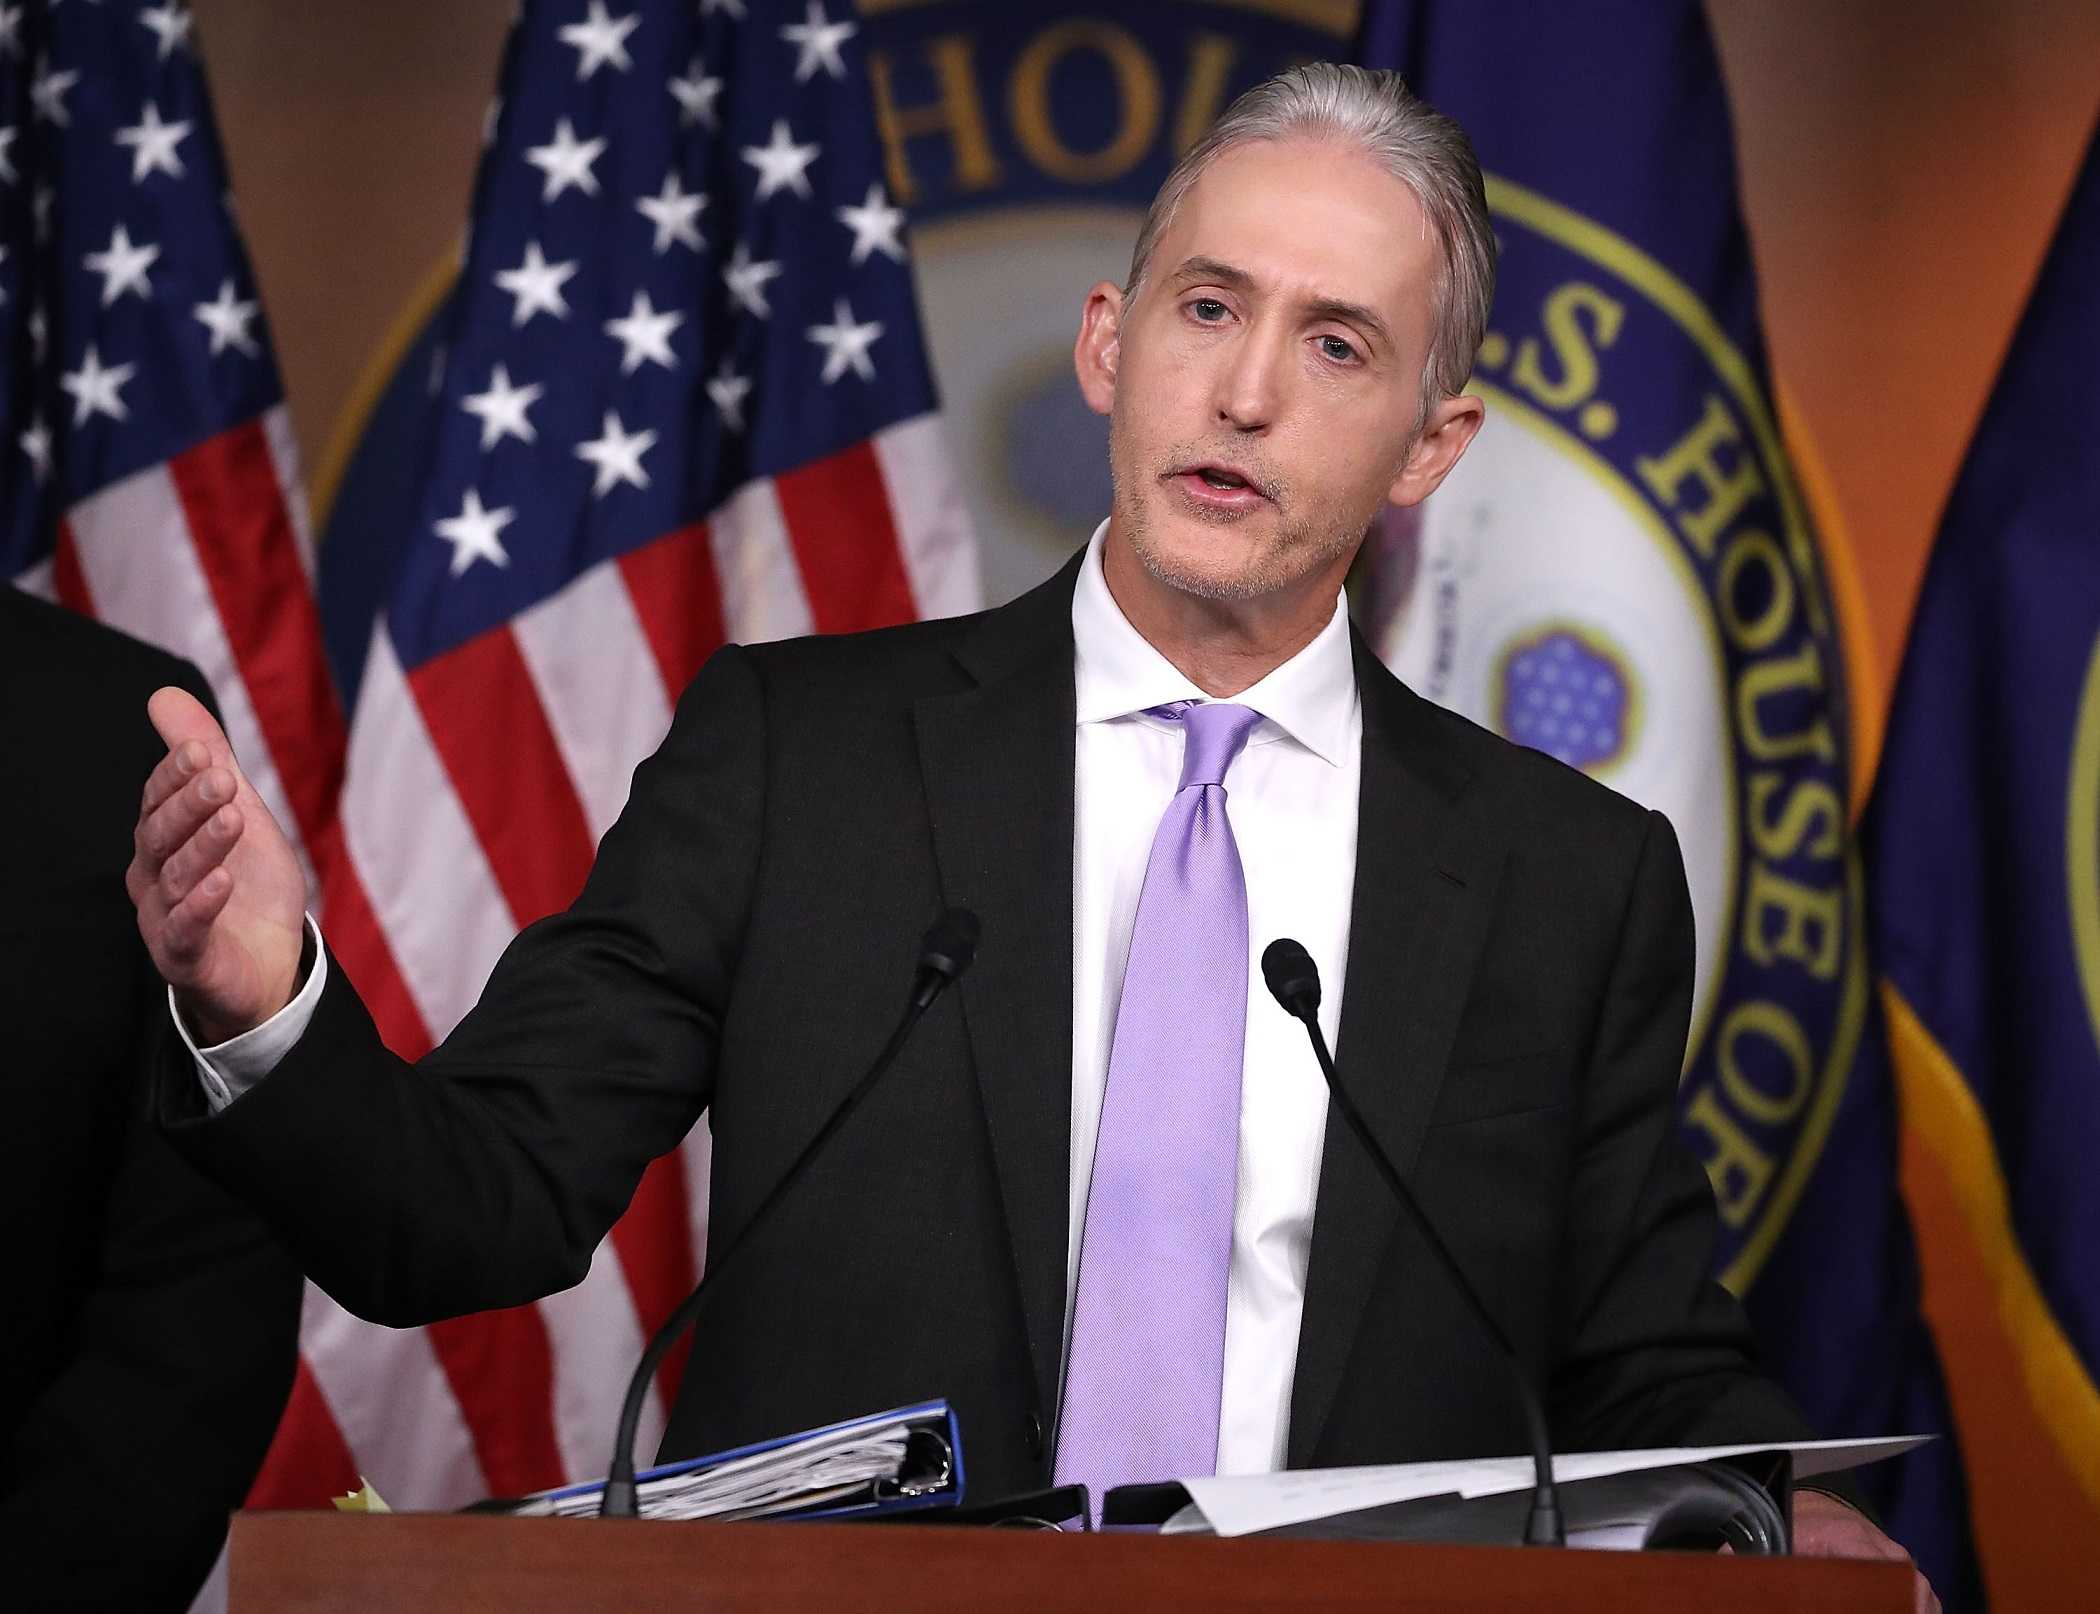 SC Rep. Trey Gowdy announces he won't run for re-election